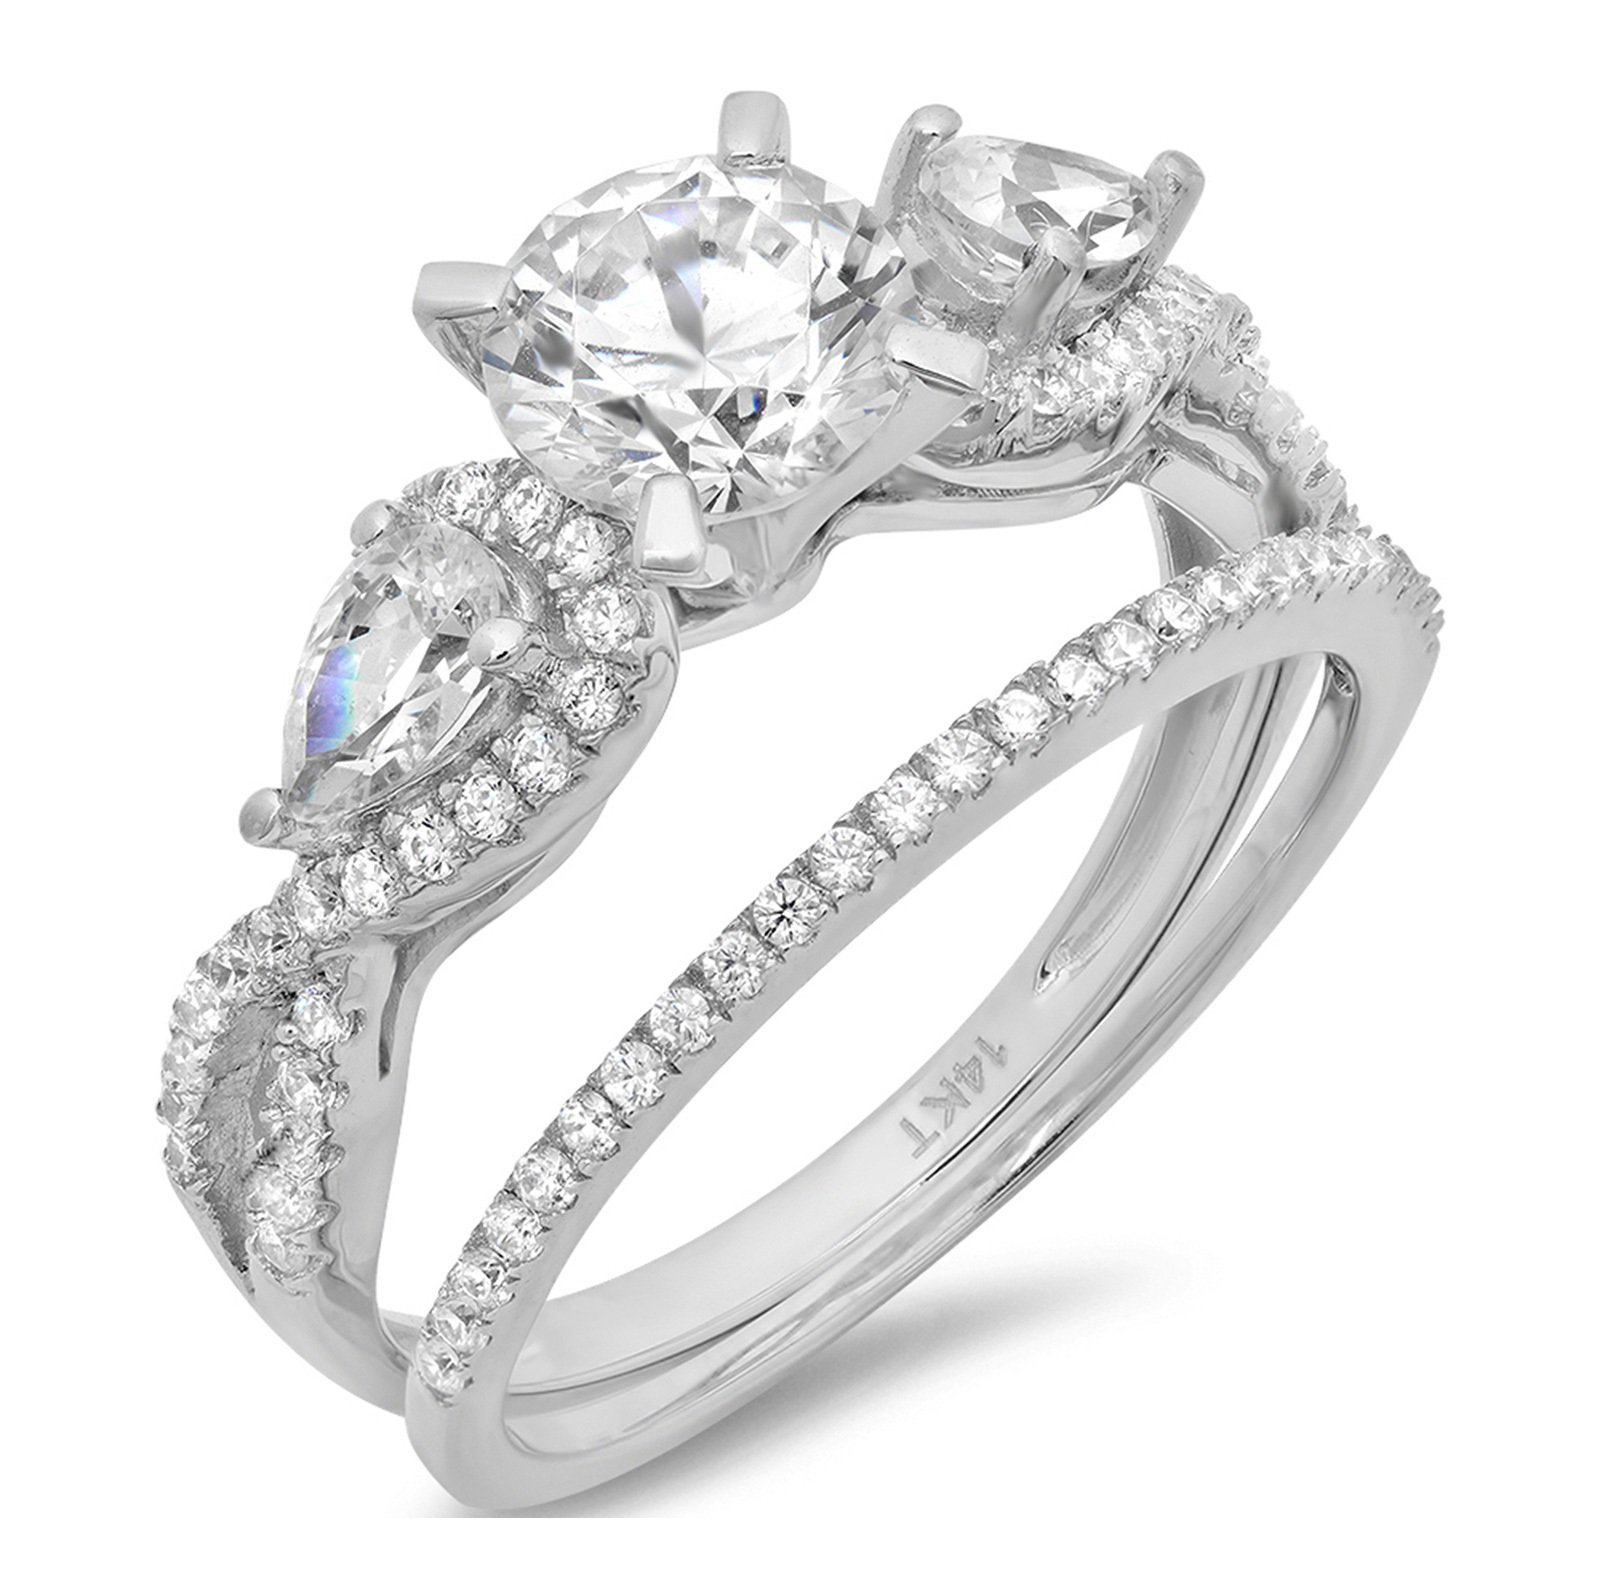 Clara Pucci 1.9 CT Round And Pear Cut Pave Halo Bridal Engagement Wedding Ring band set 14k White Gold, Size 7